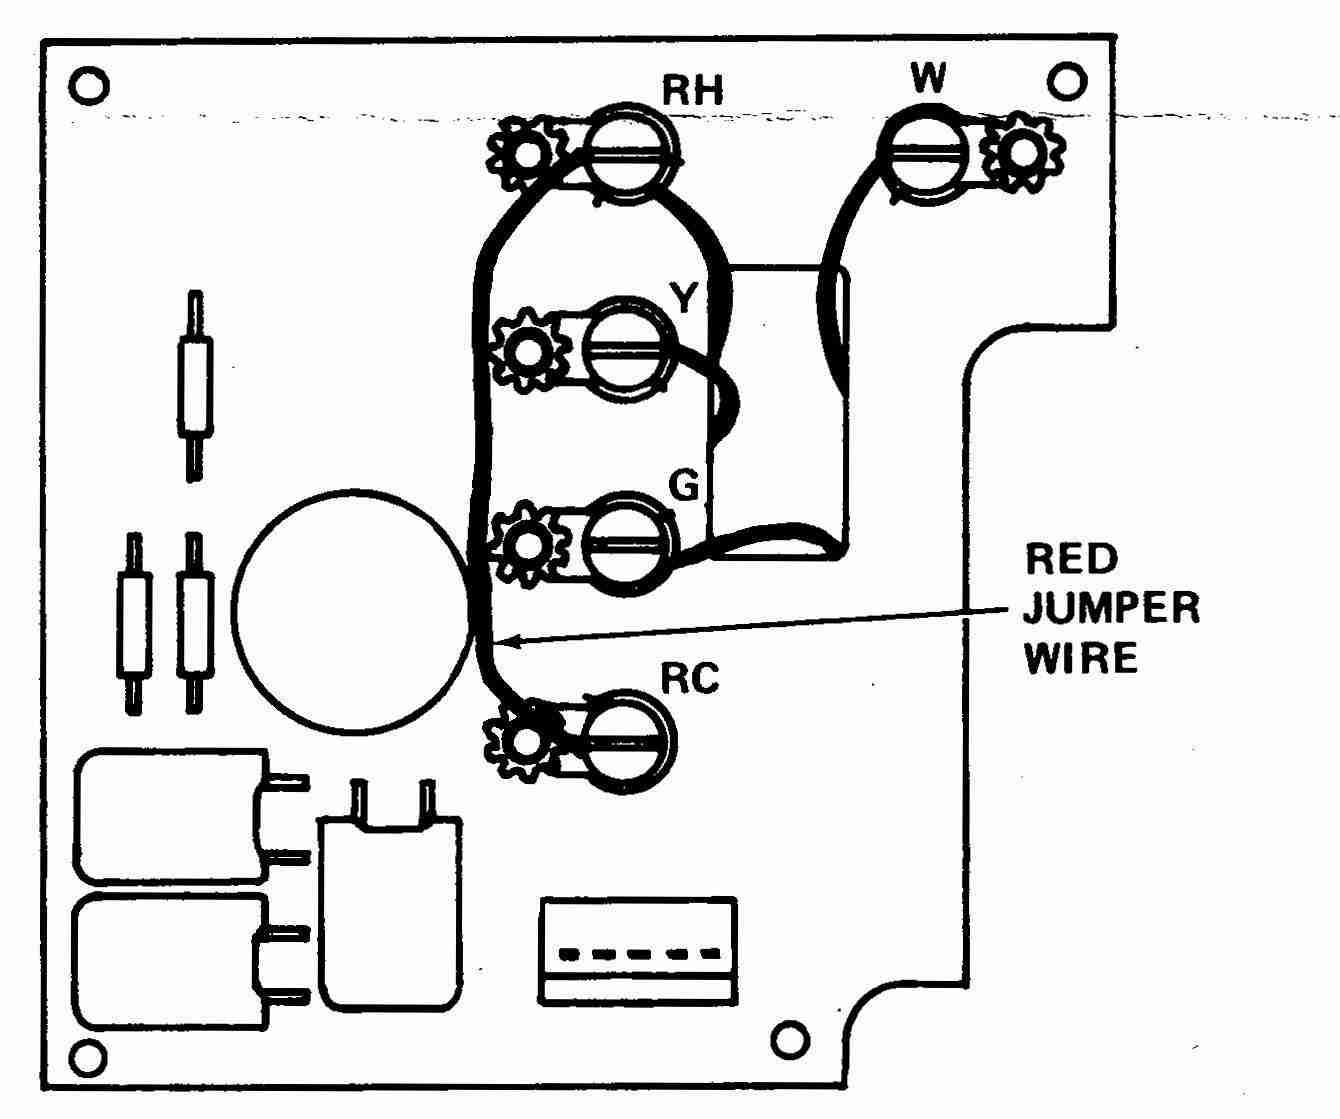 WR_1F90_006f16_DJFc how wire a white rodgers room thermostat, white rodgers thermostat white rodgers 50a50 472 wiring diagram at virtualis.co